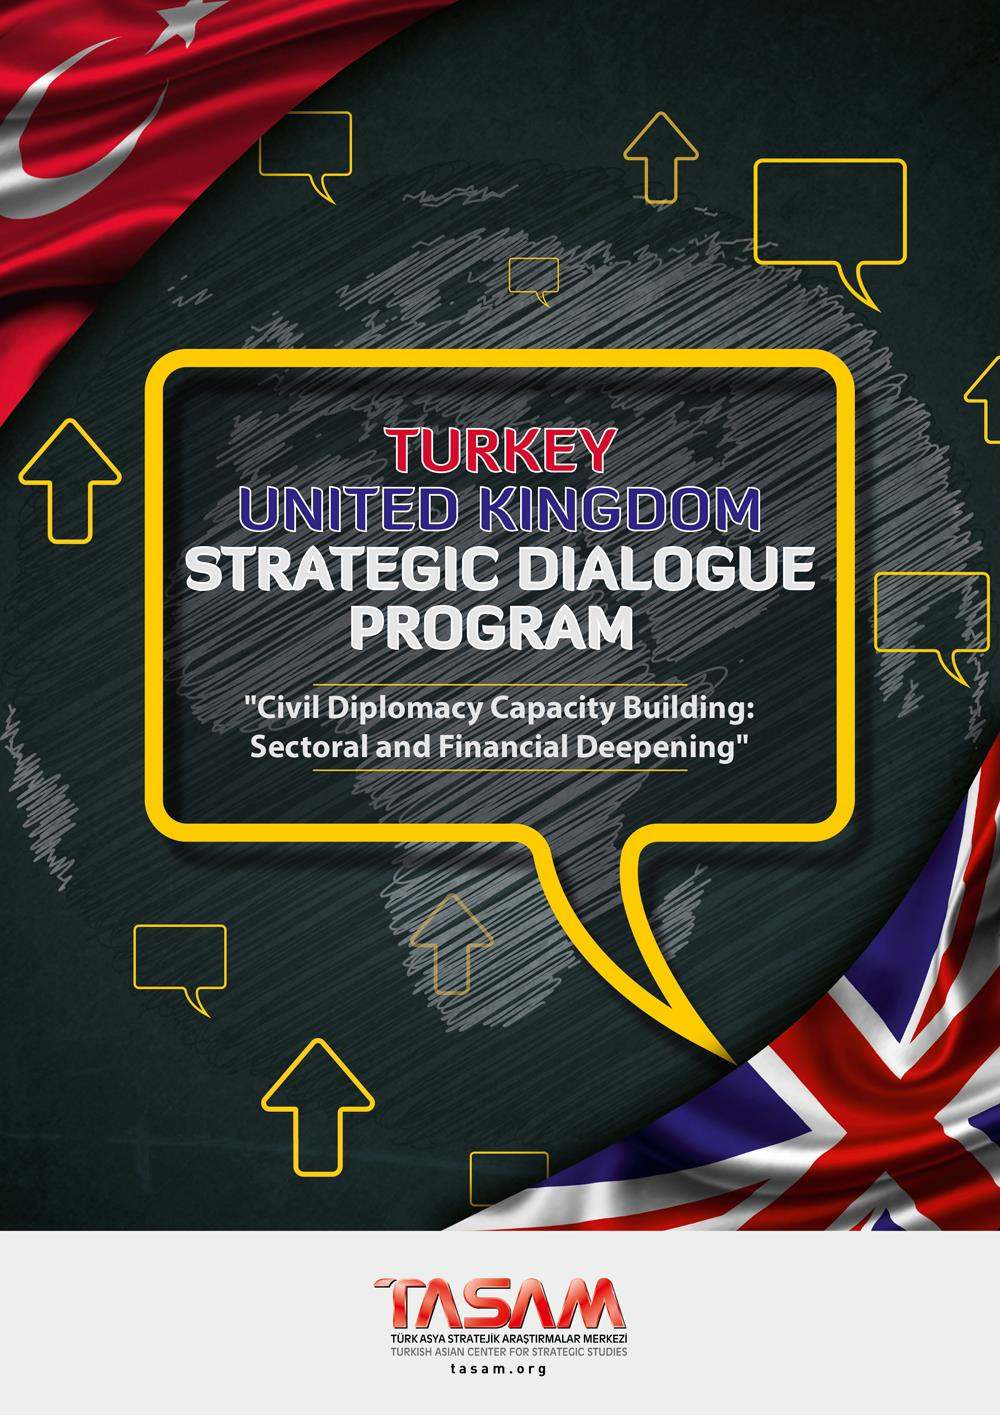 Turkey - United Kingdom Strategic Dialogue Program